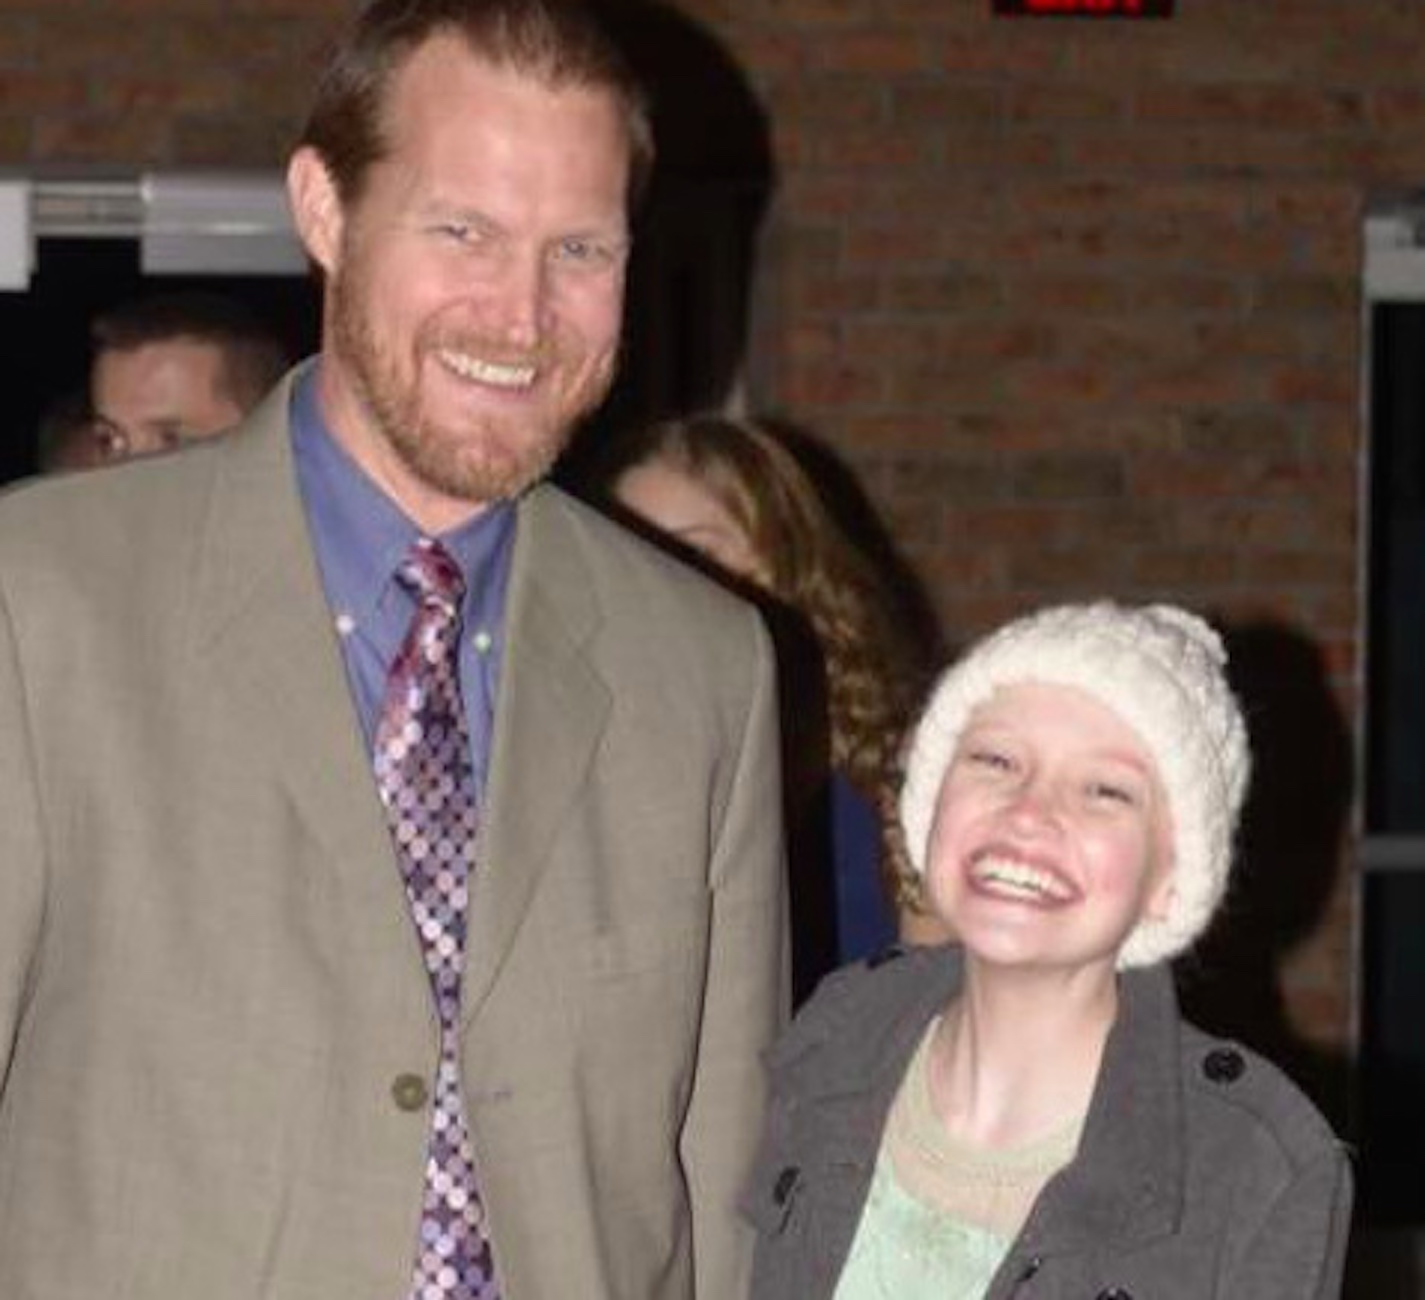 The author with his daughter, both smiling